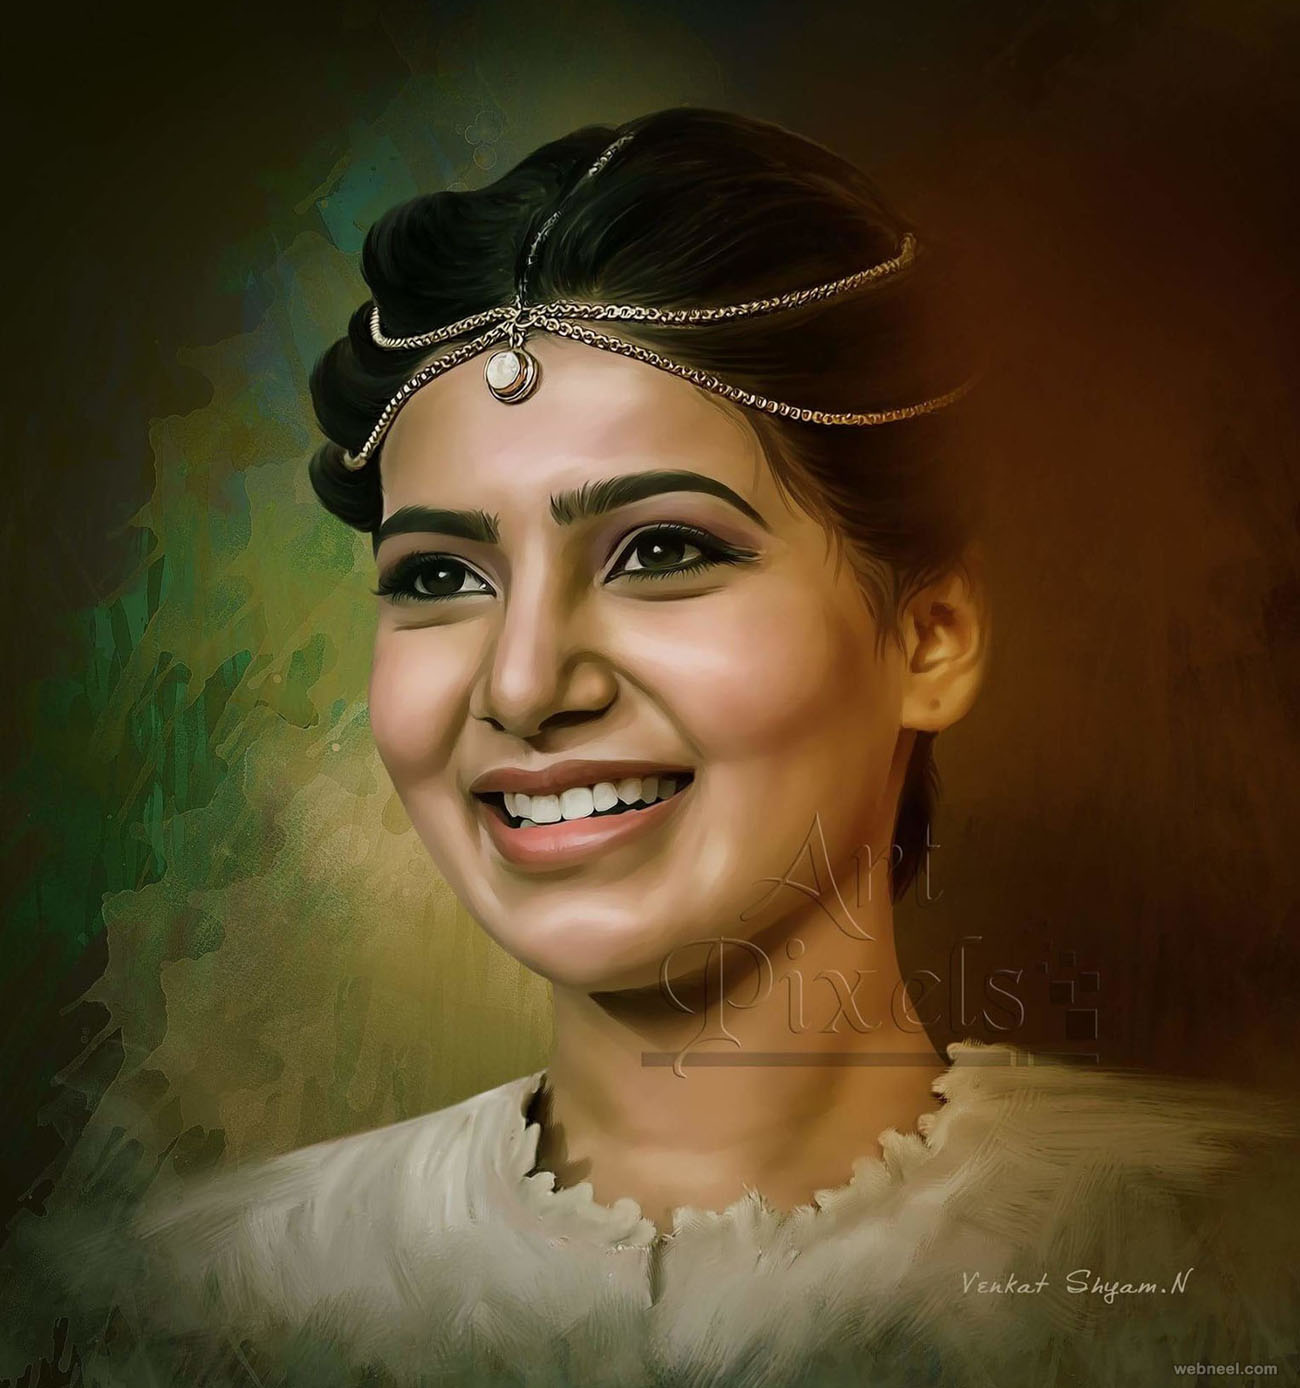 samantha actress digital painting by venkat shyam